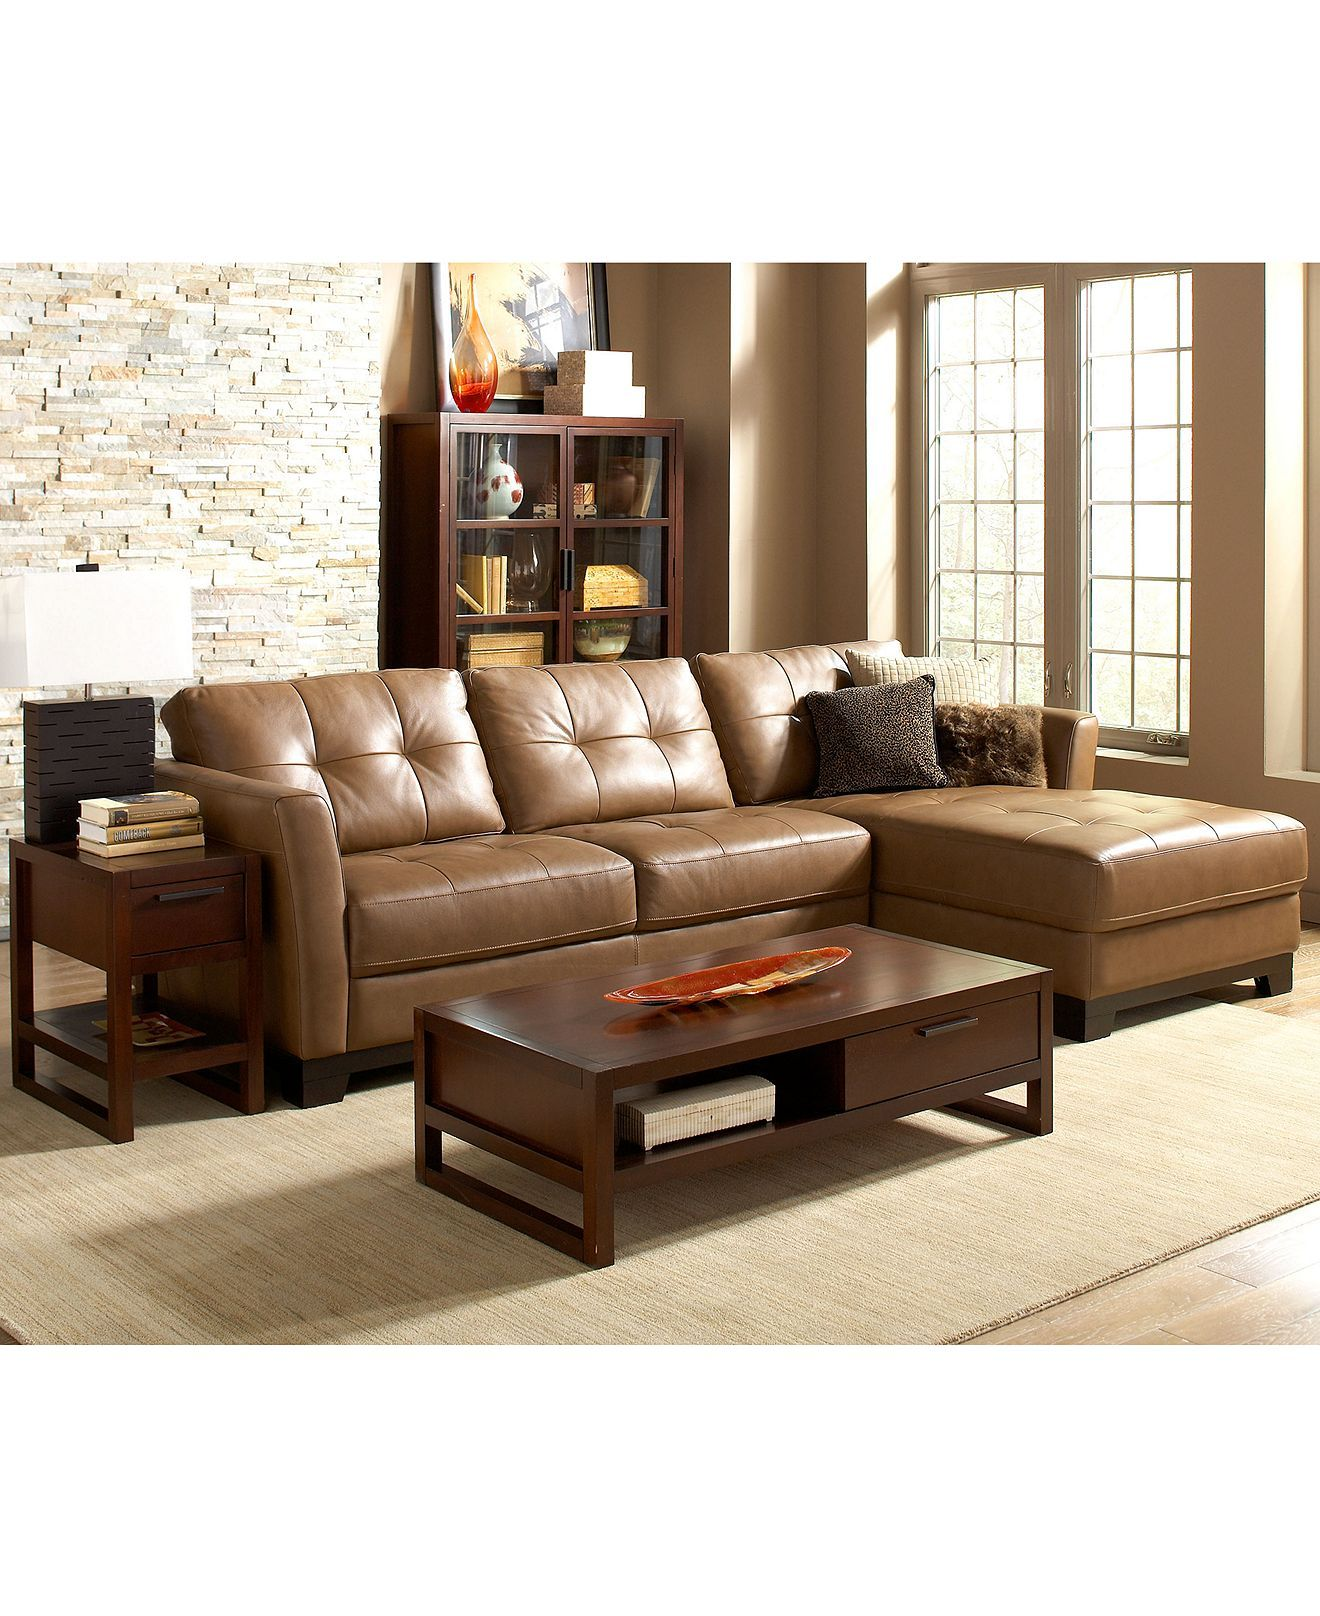 Martino Leather Sectional Living Room Furniture Sets U0026 Pieces   Furniture    Macyu0027s